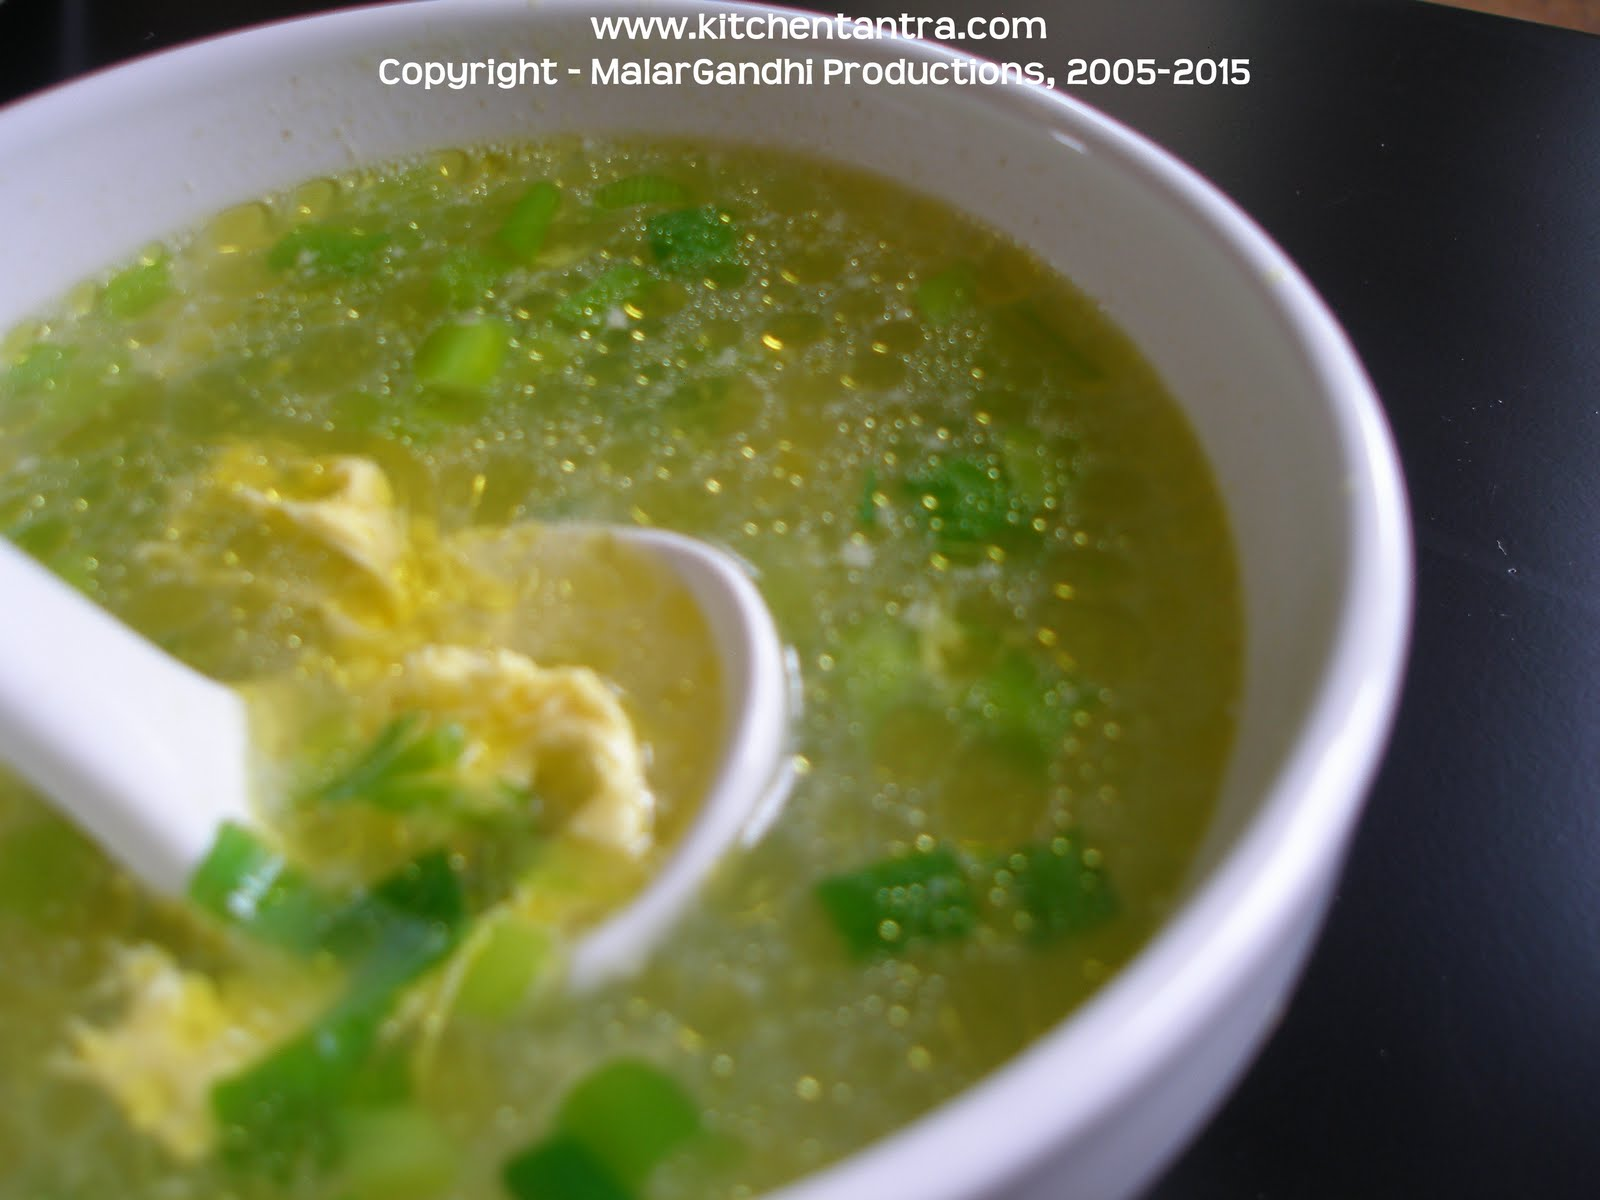 ... Tantra - tease your palate: Egg Drop Soup / Indo-Chinese Egg Soup